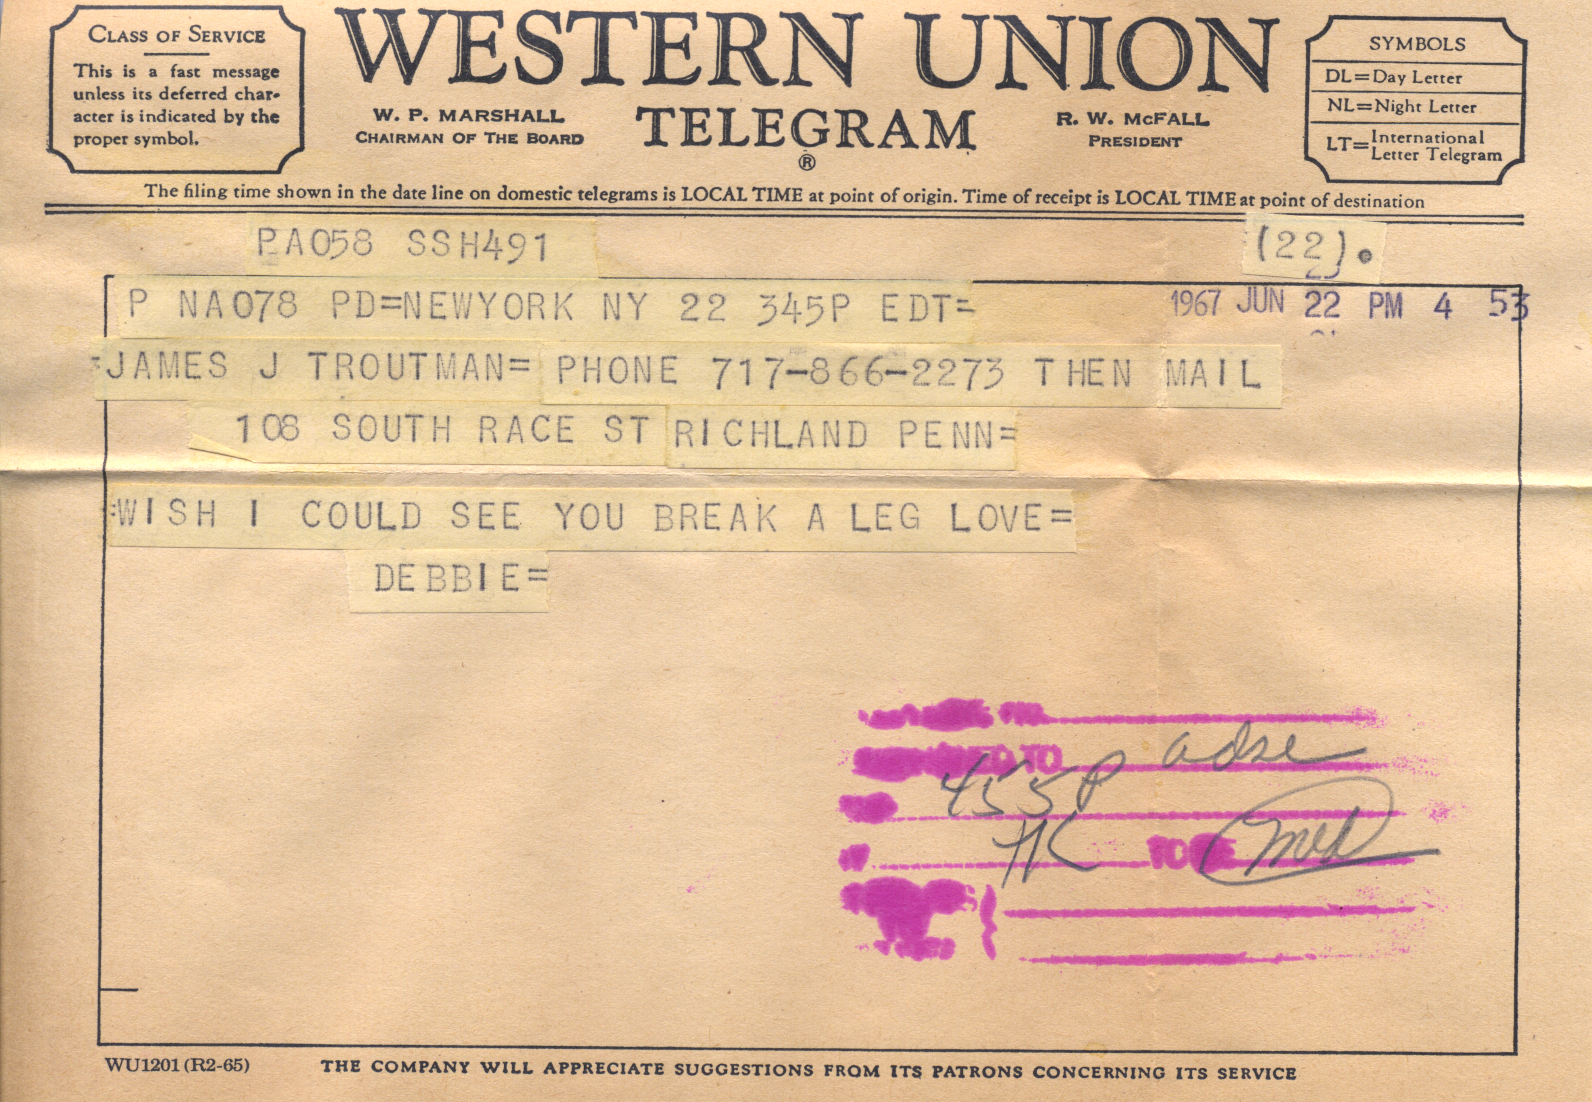 The telegram from Debbie